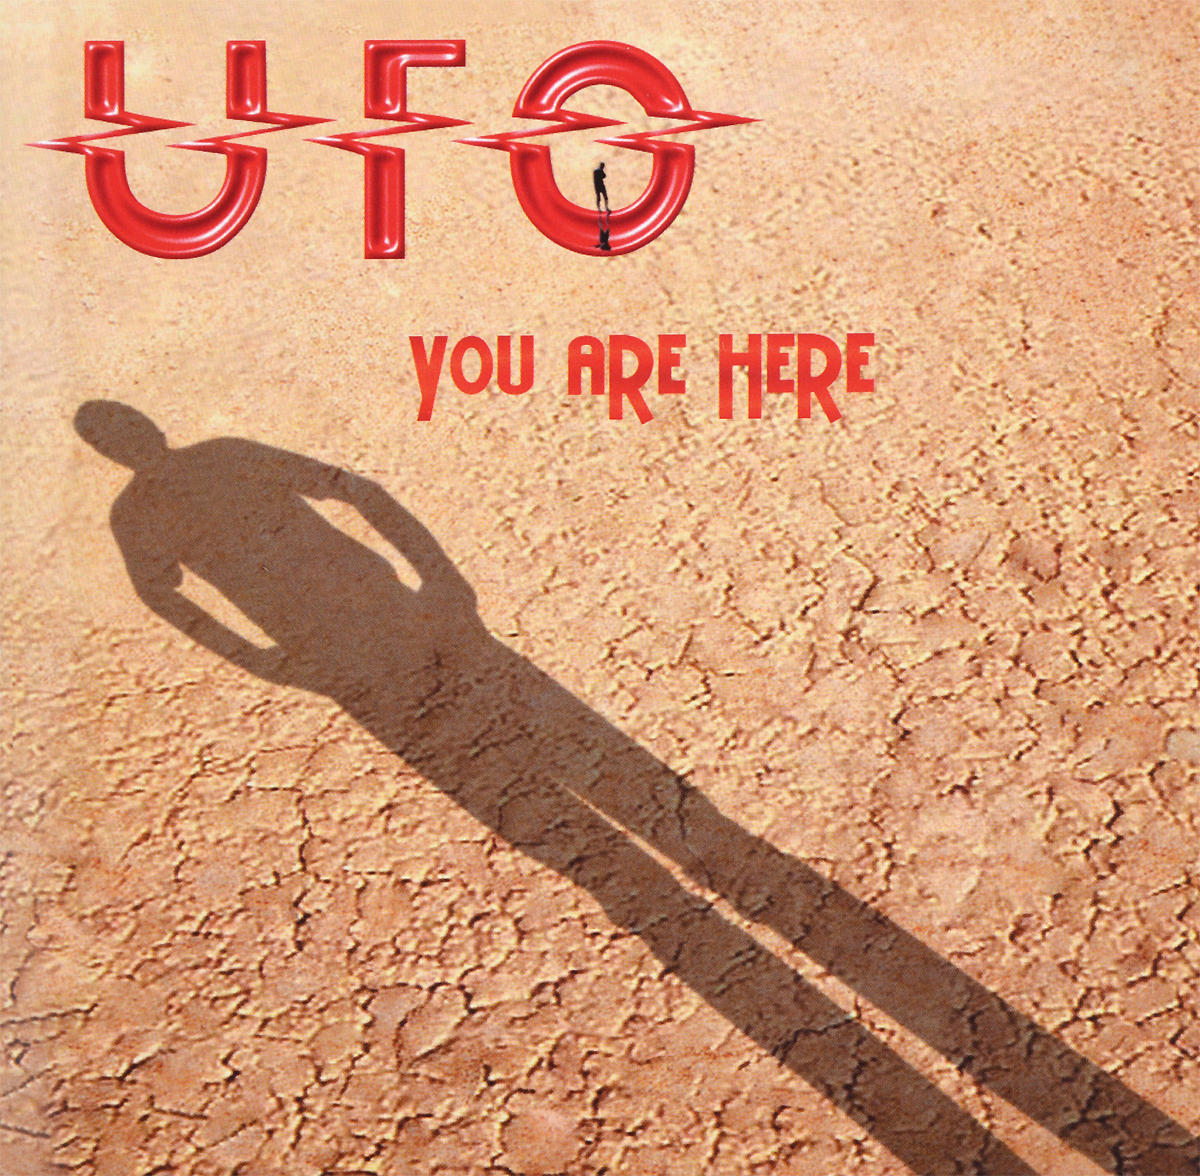 UFO UFO. You Are Here ufo ufo you are here